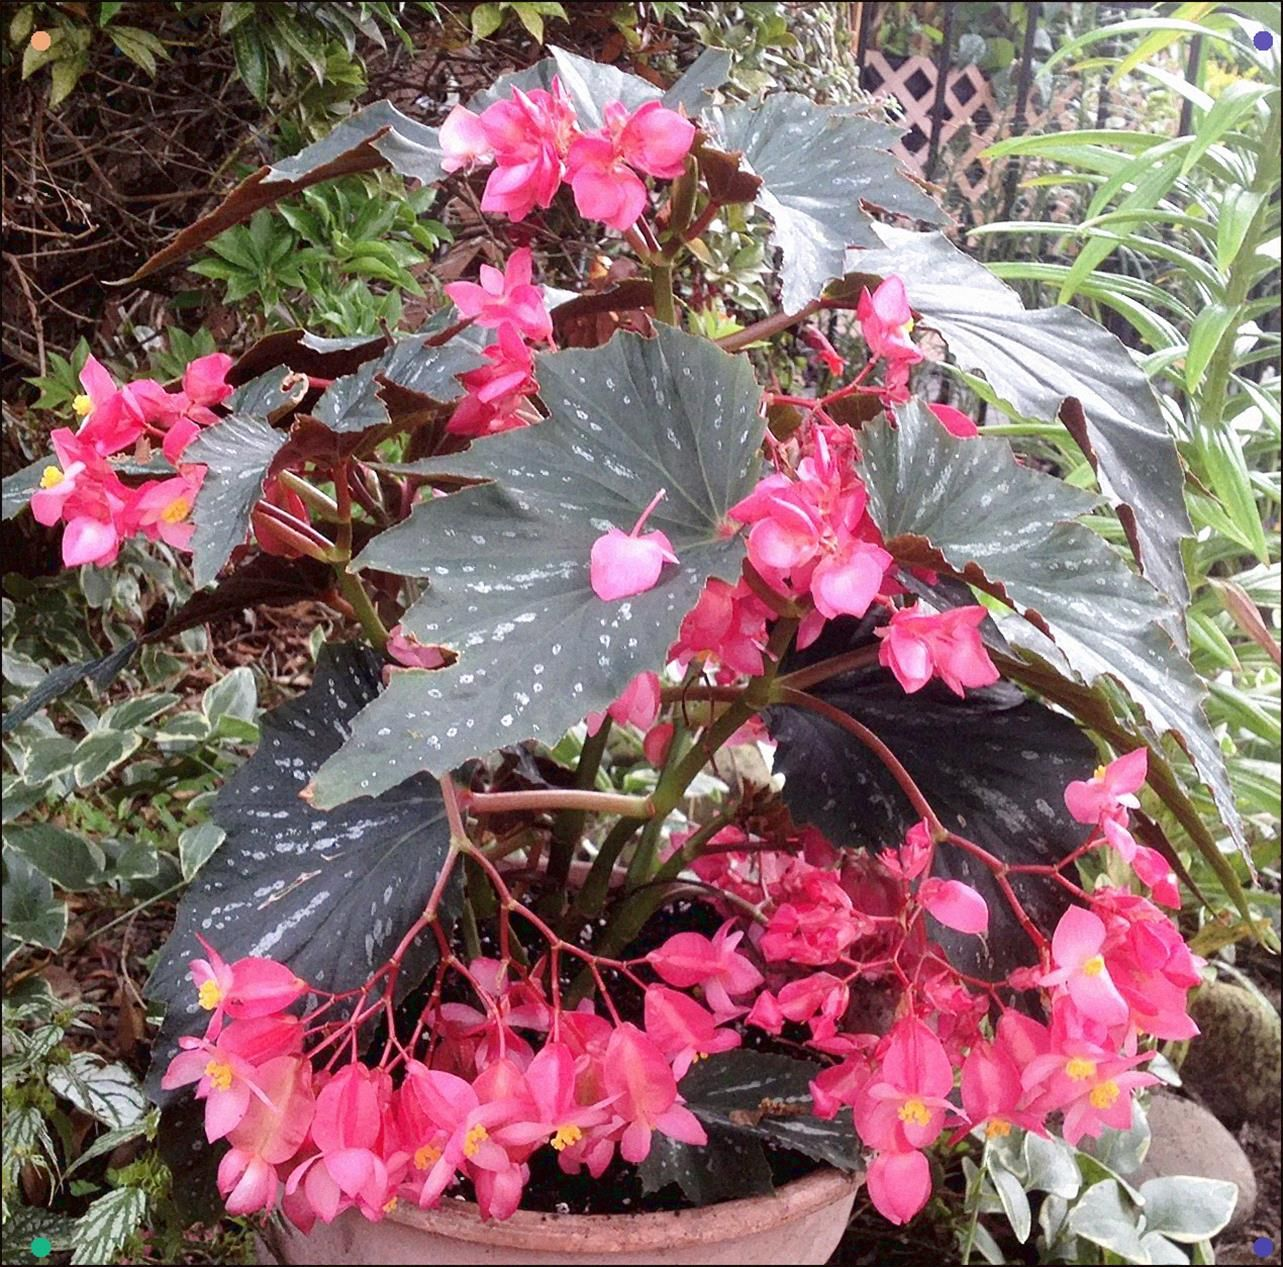 Angel Wing Begonia Beginners Guide To The Angel Wing Begonia Angel Wing Begonia Is A Long Established Plant That Is Coming Back In Plants Bonsai Flower Begonia